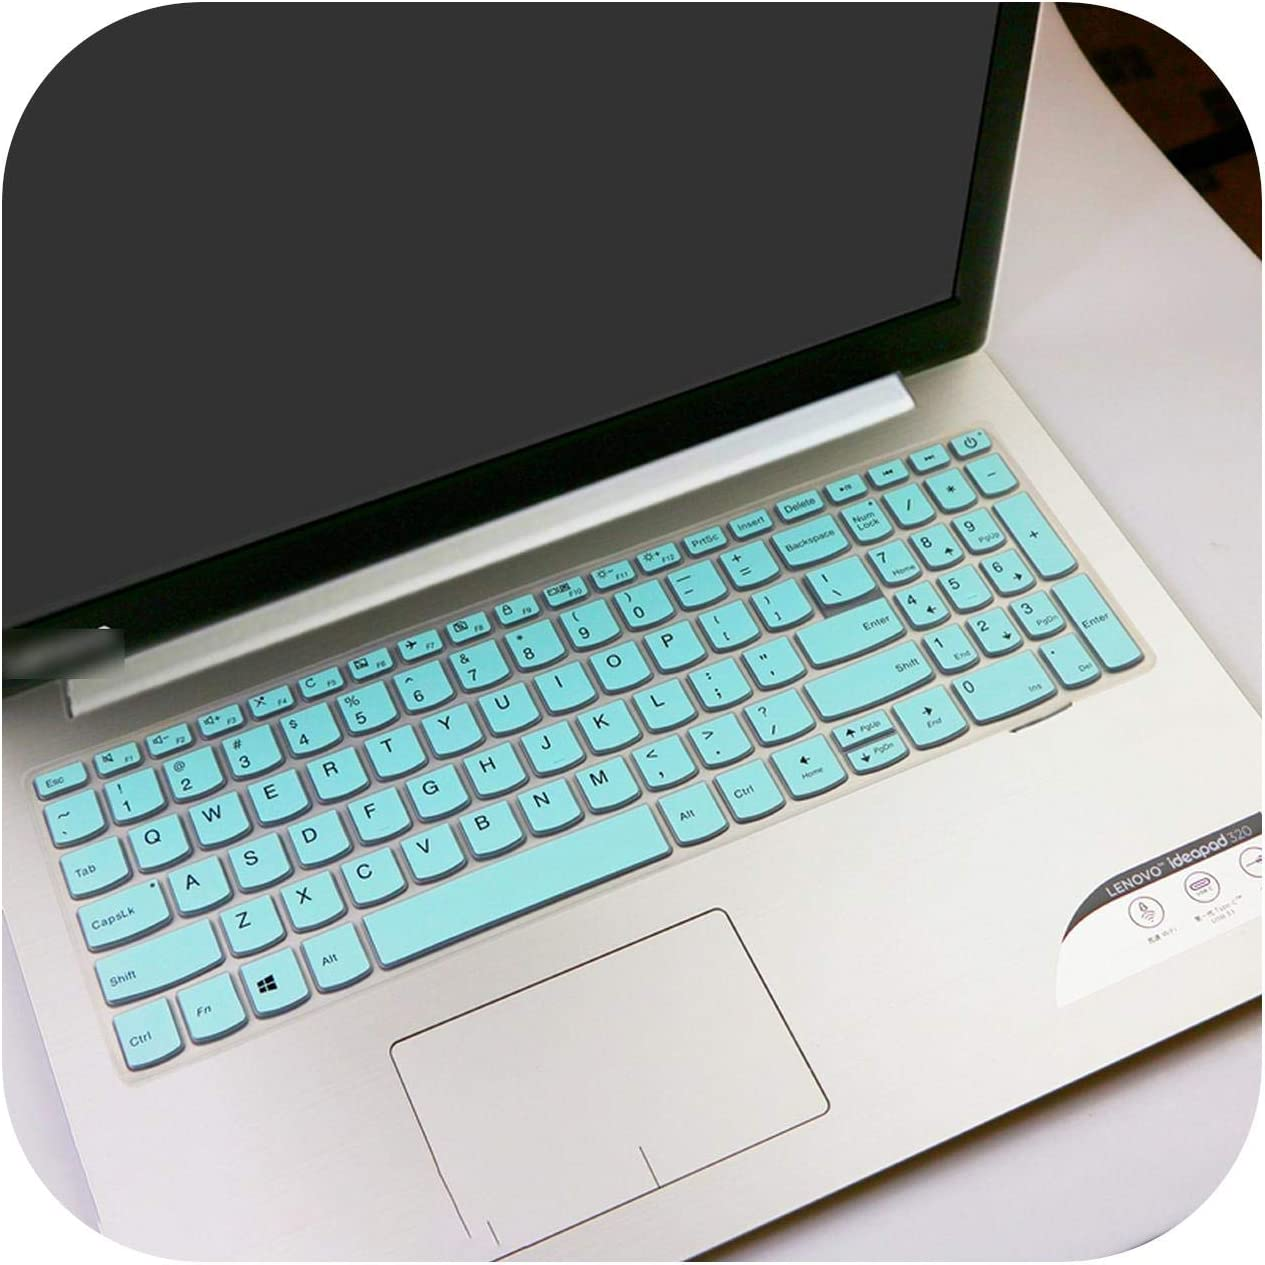 2020 for Lenovo Ideapad 330 320 320 17 330 17 17.3 Hd I5 8250U 17 Inch Laptop Notebook Keyboard Cover Skin Protector-Blue